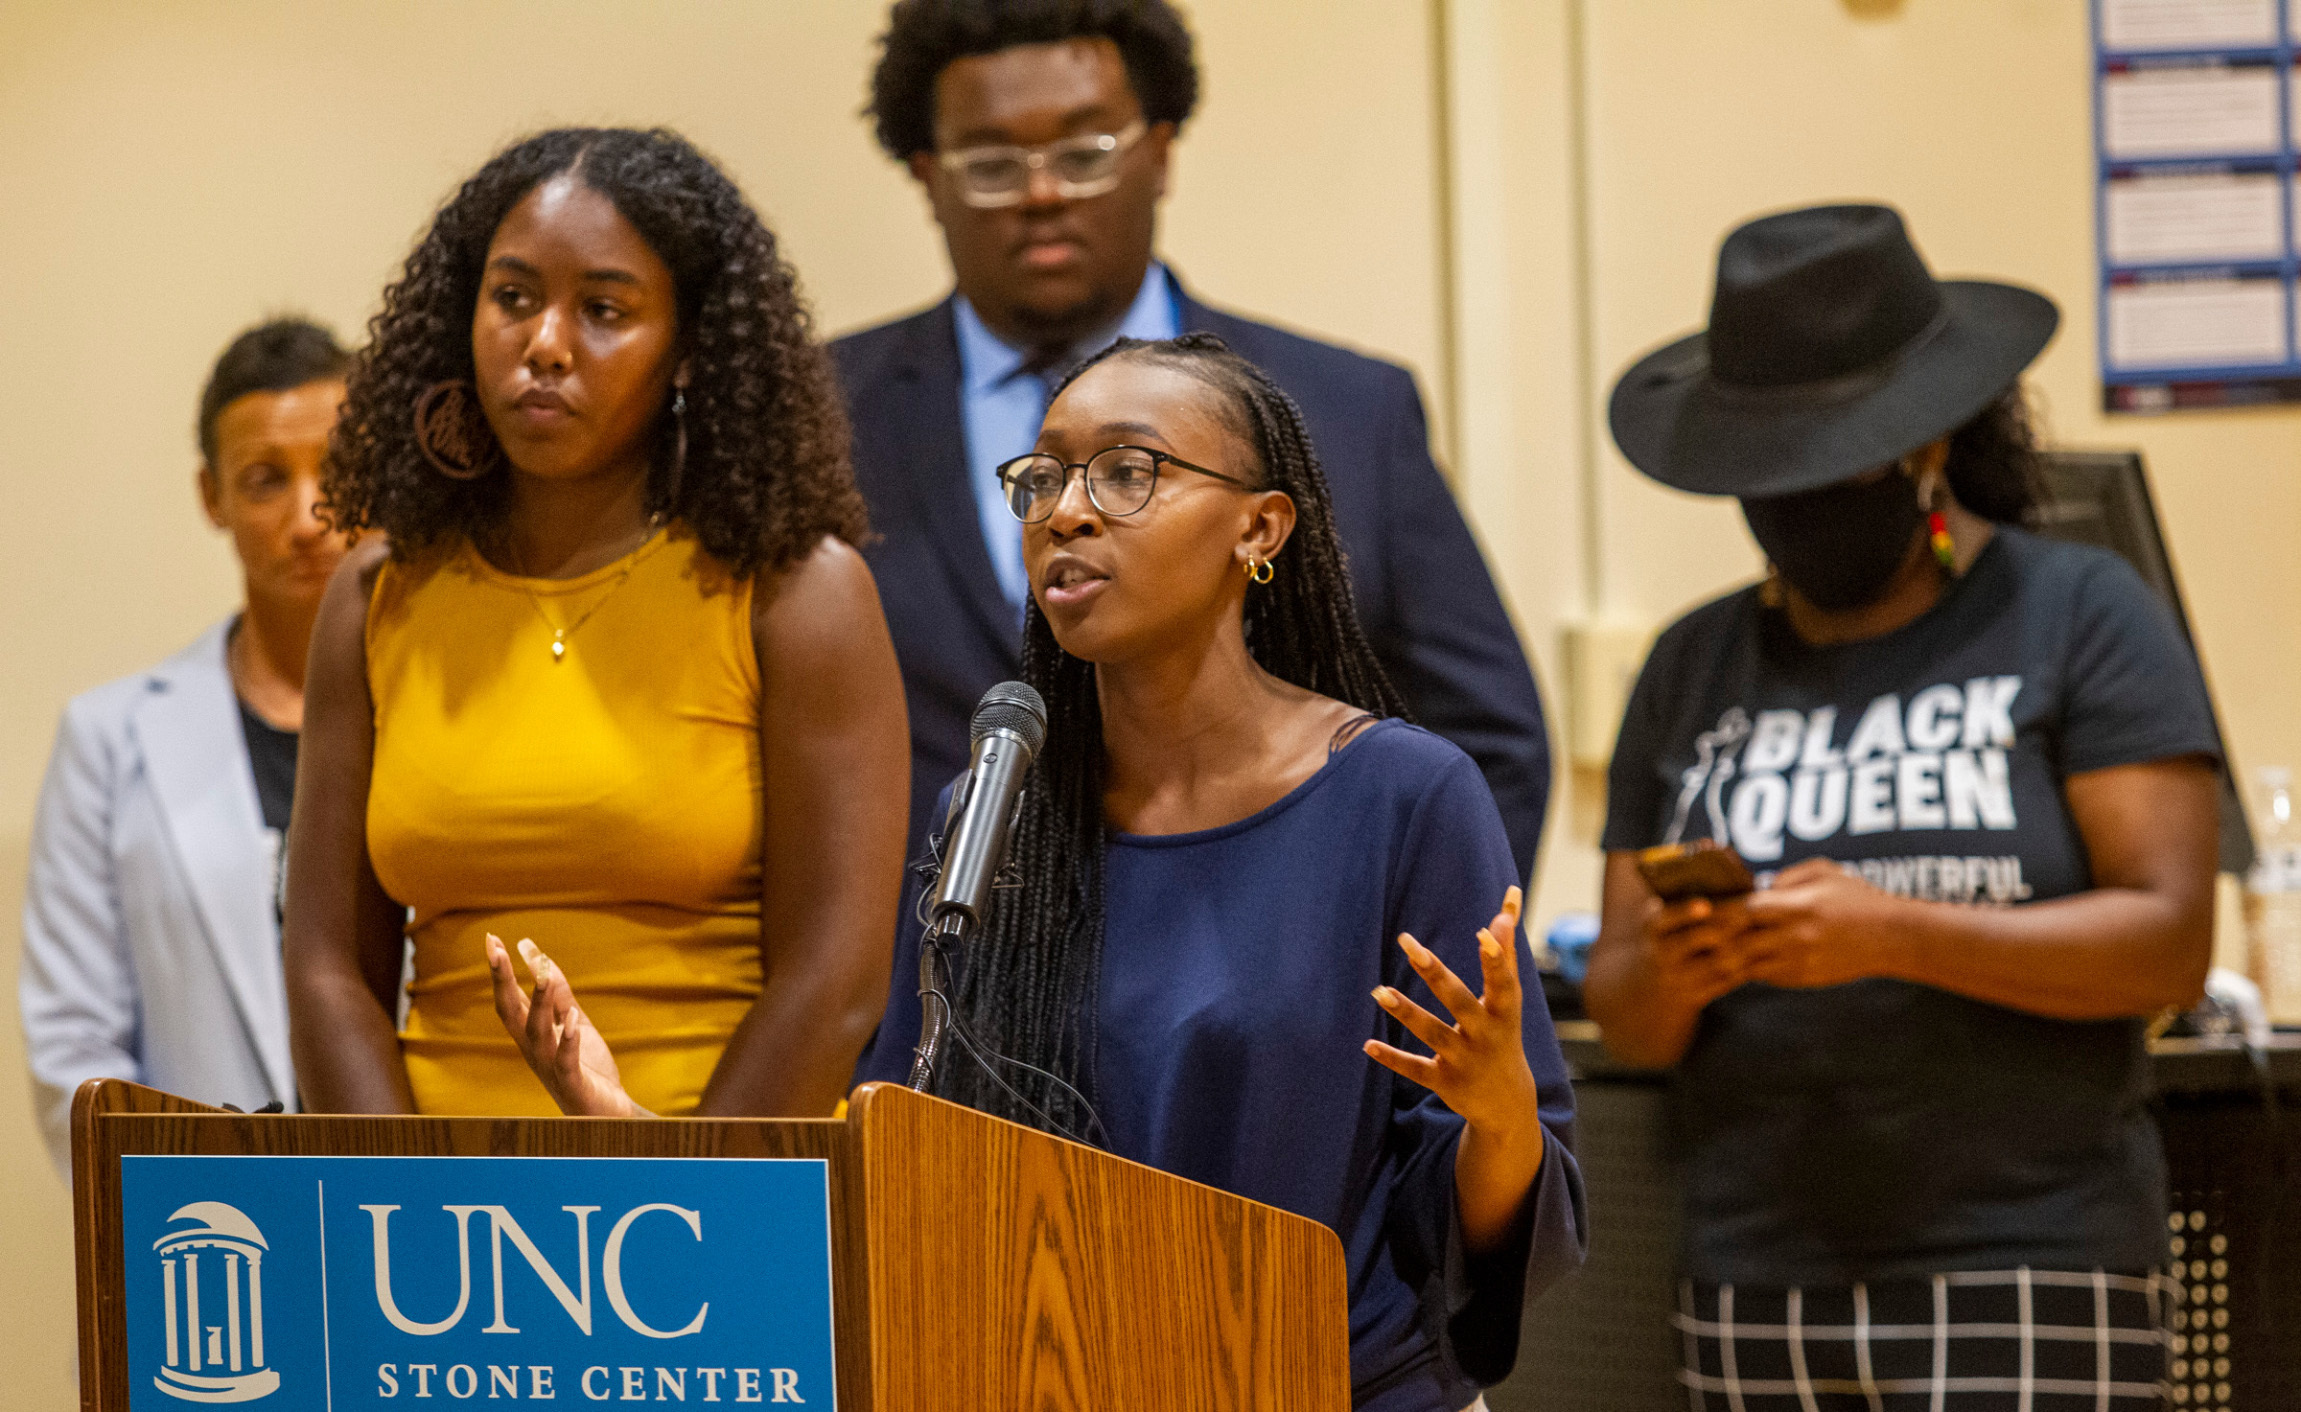 Black Students and Faculty at UNC Say School Needs Self-Examination on Race